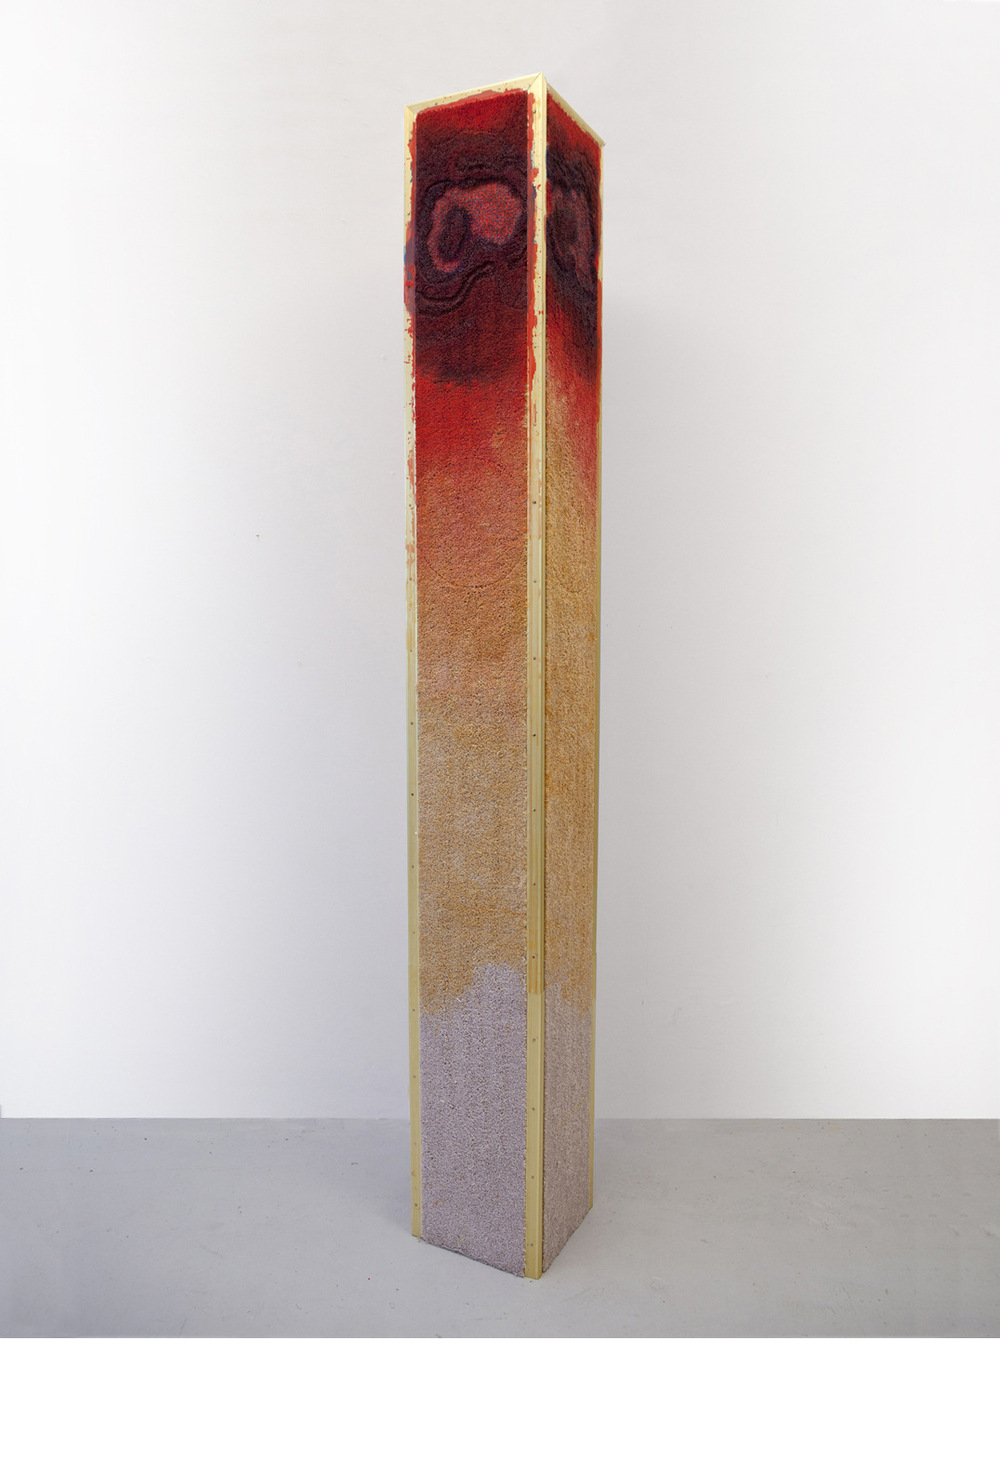 Matias Cuevas - From the Bottom of Time #1 Carpet, carpet trim, paint thinners, fire, acrylic, and wood. 12 x 12 x 96 (31 cm x 31 cm x 244 cm) 2012 - 2013 © Matias Cuevas